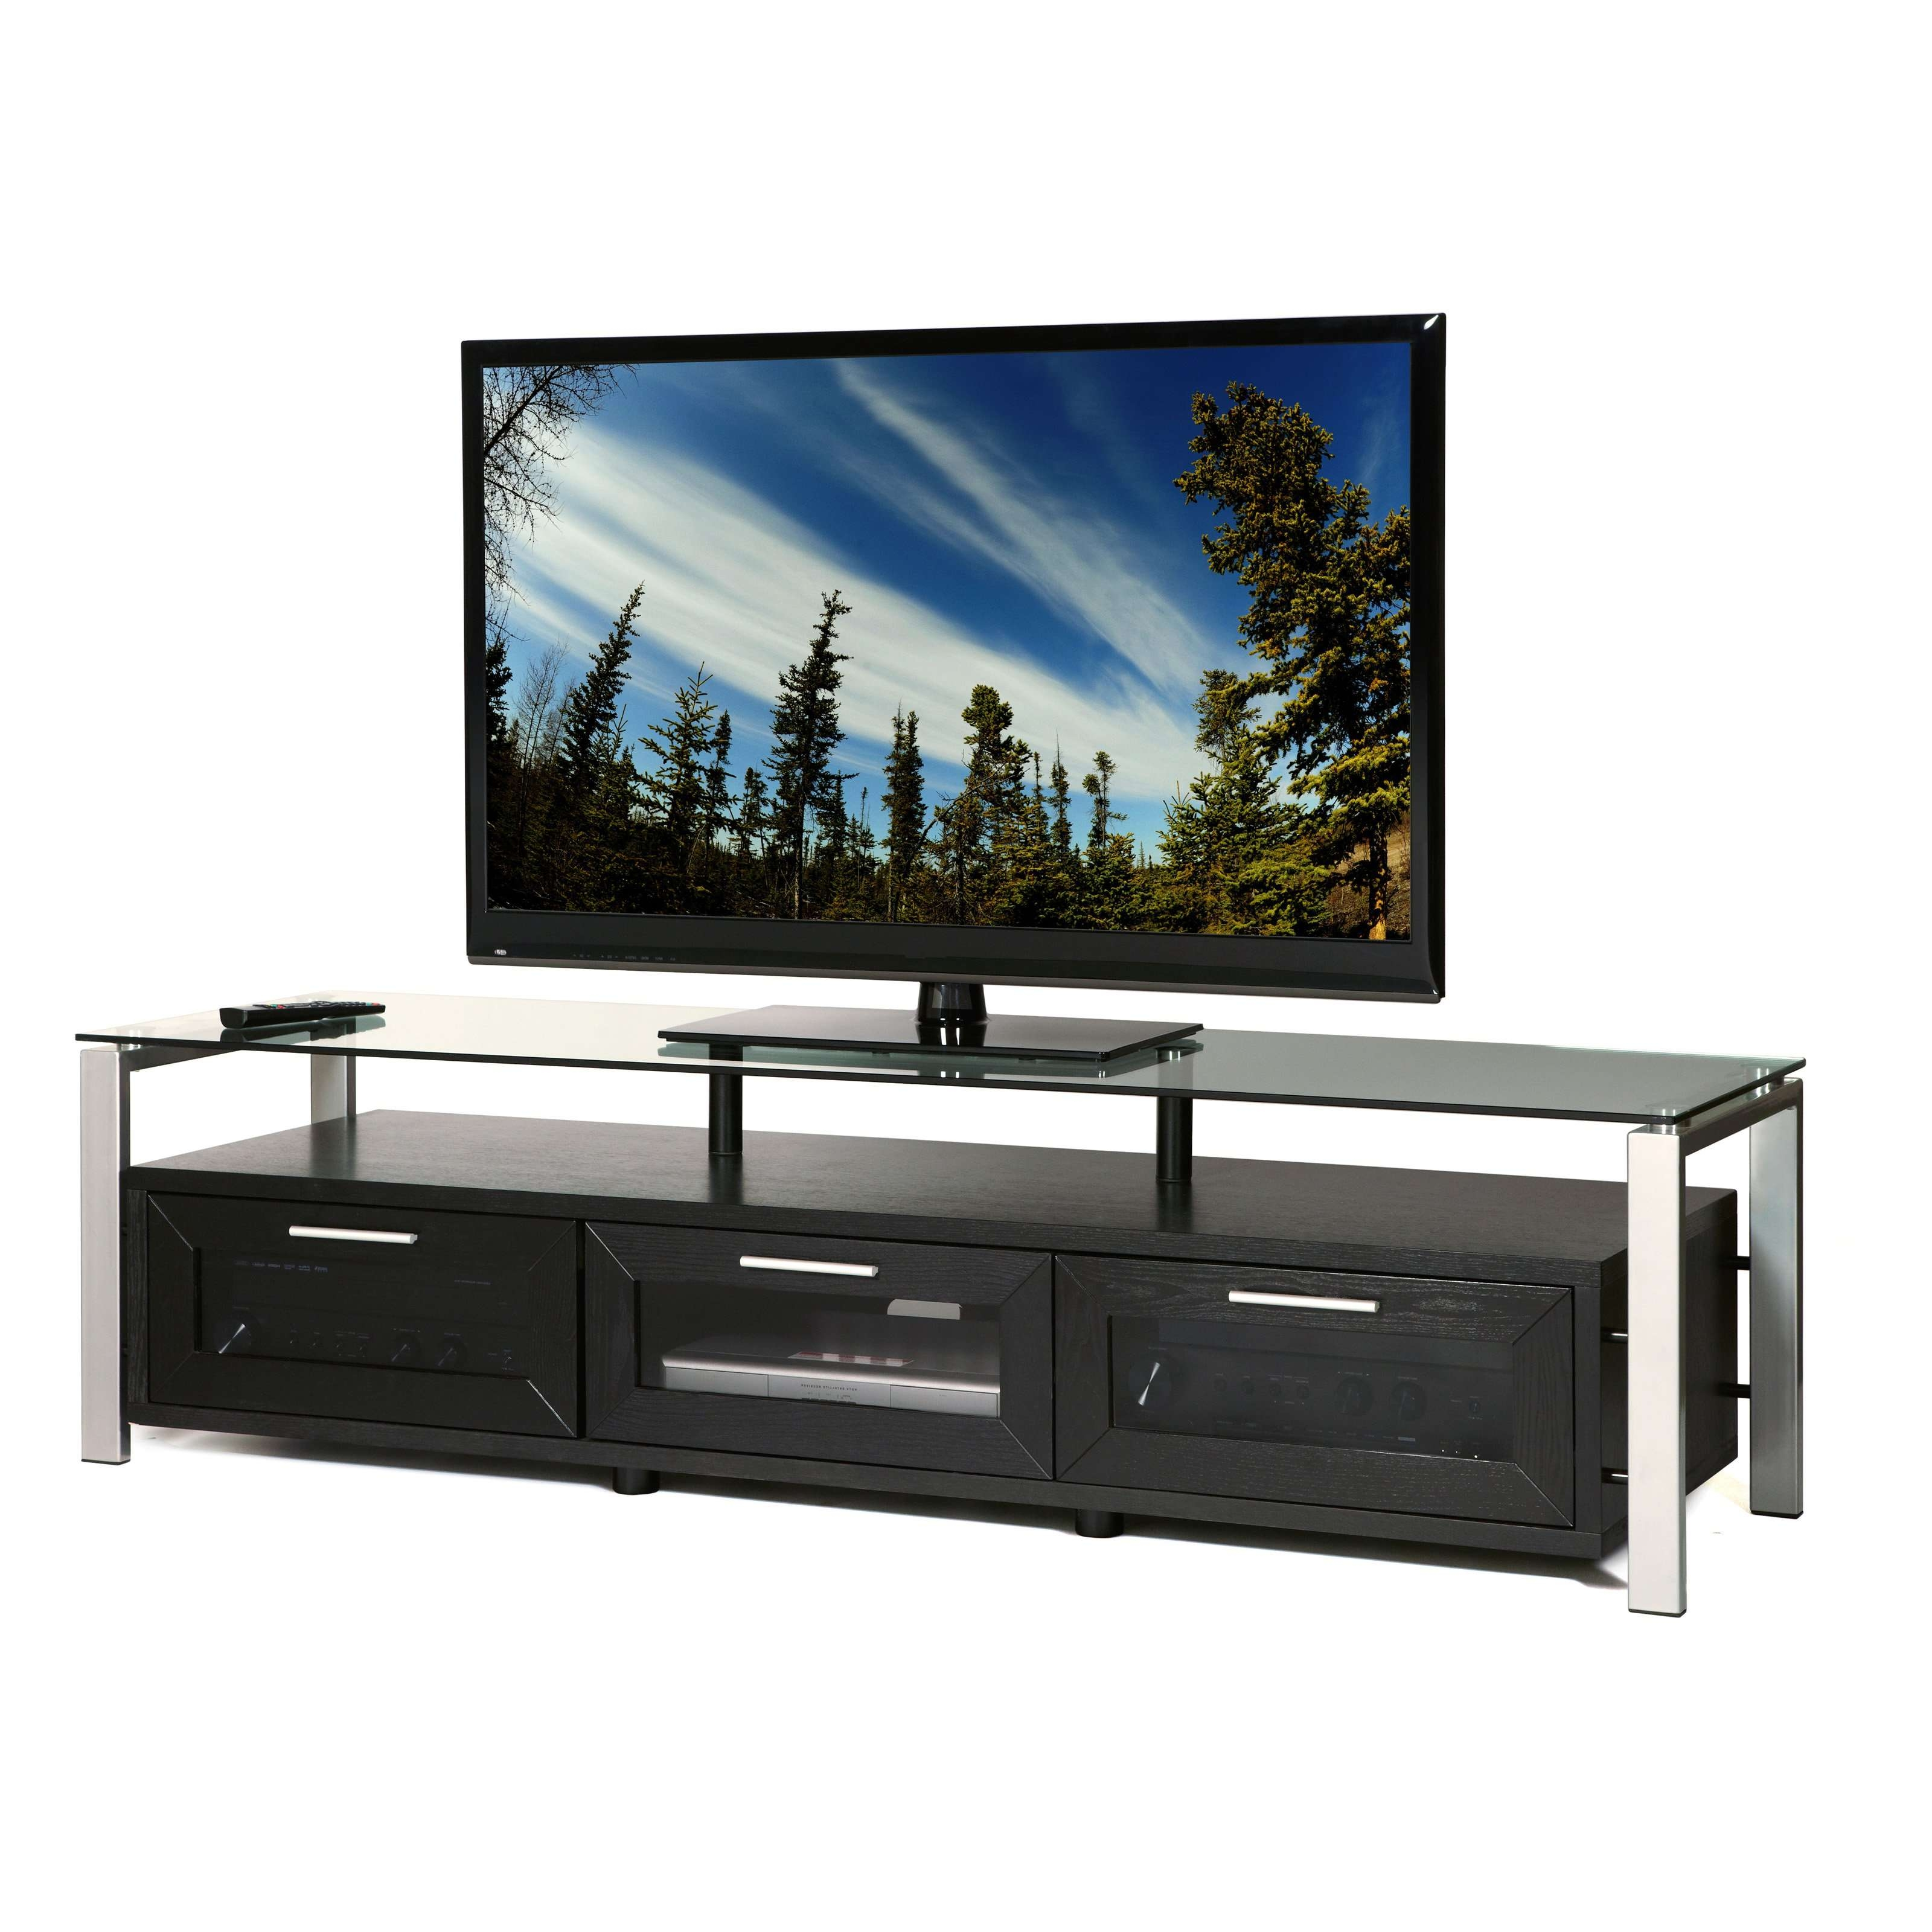 Plateau Decor 71 Inch Tv Stand In Black/clear And Silver | Hayneedle Throughout Silver Tv Stands (View 10 of 15)